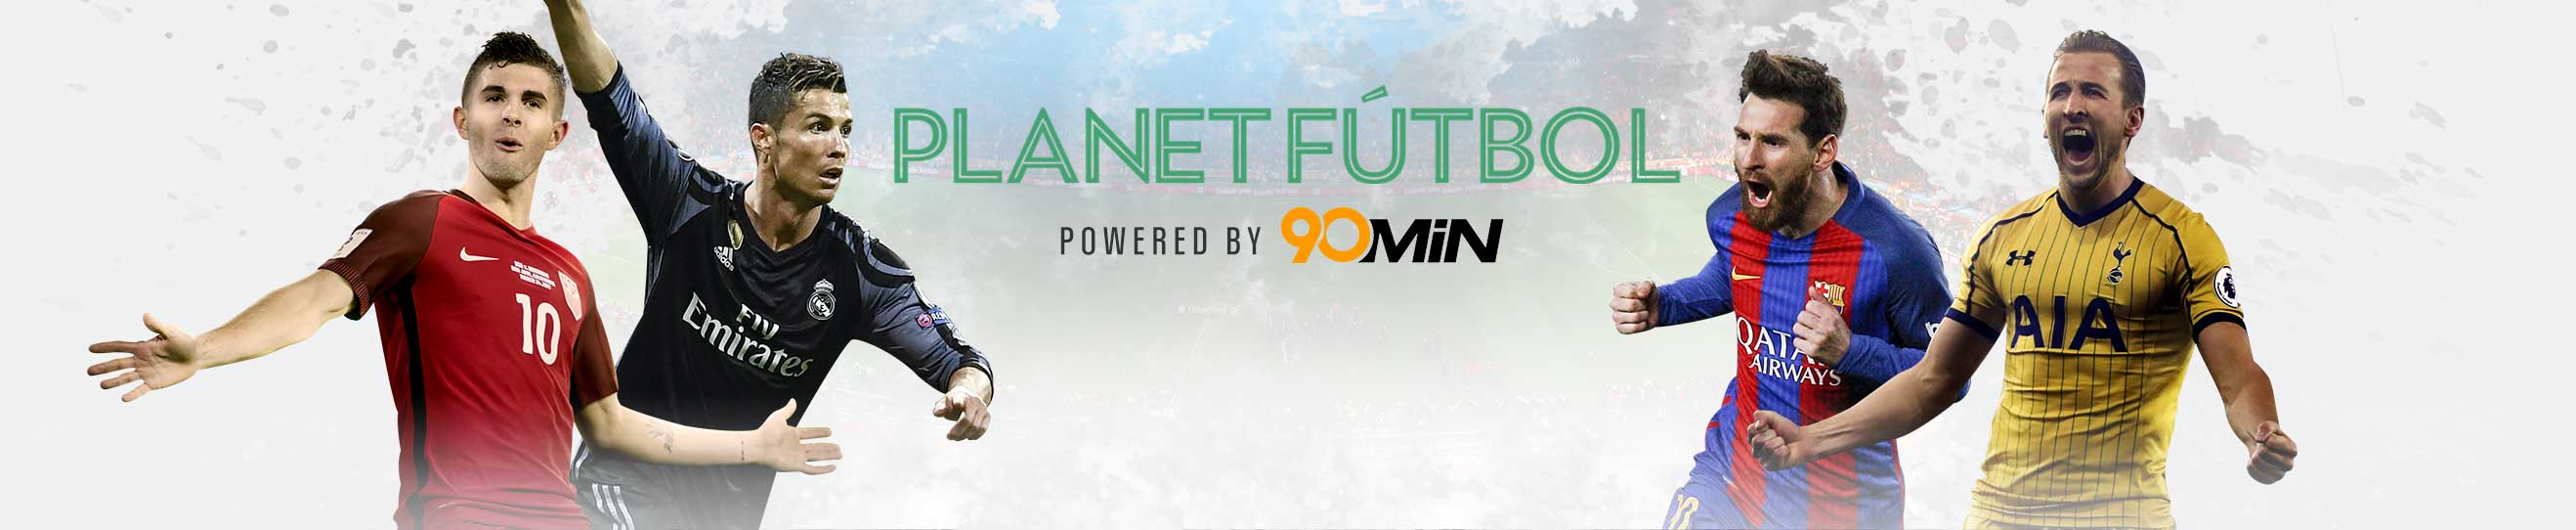 Planet Futbol